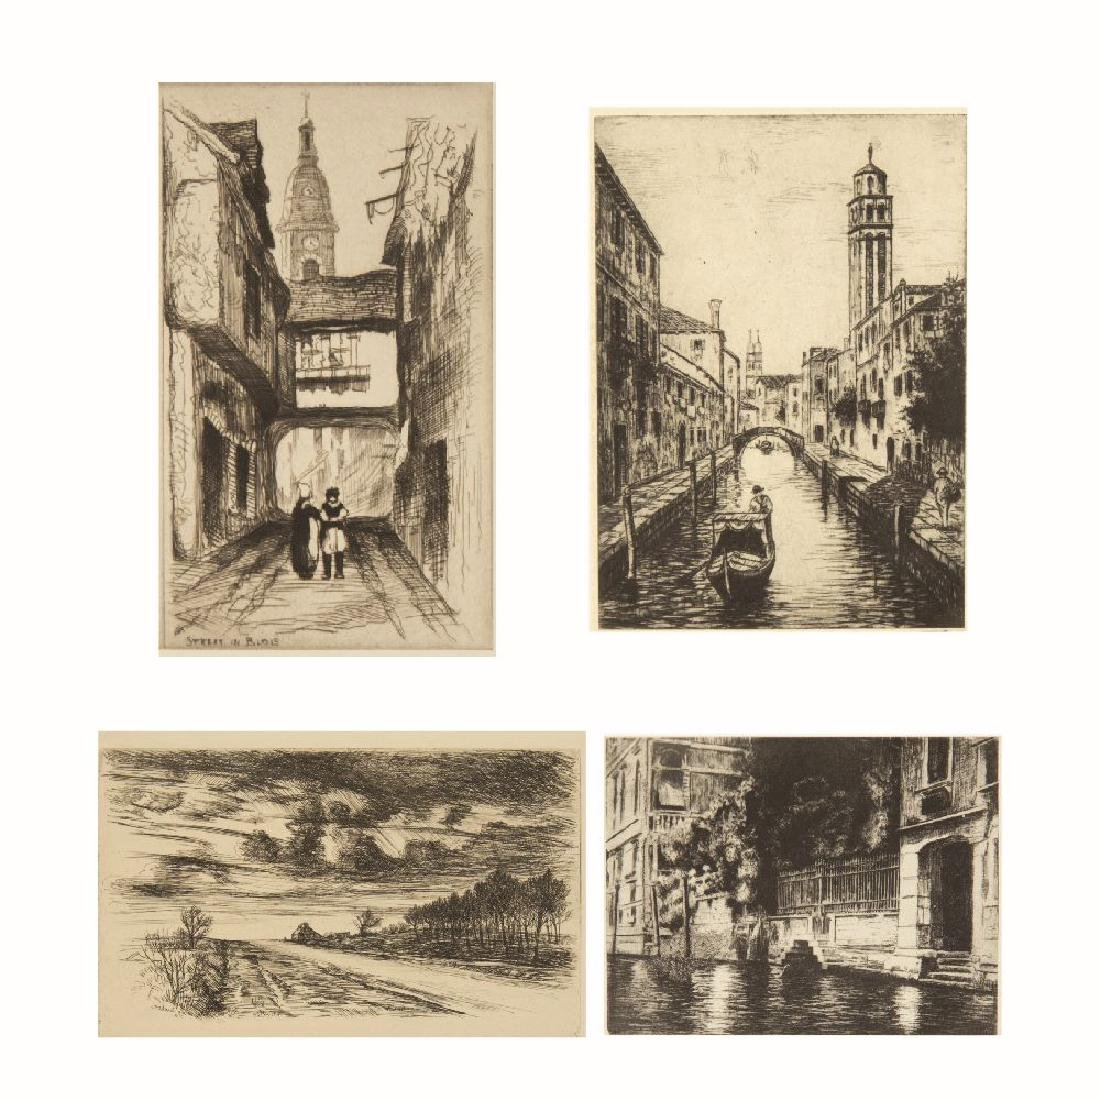 John Taylor Arms (1887-1953) Street in Blois, Etching,